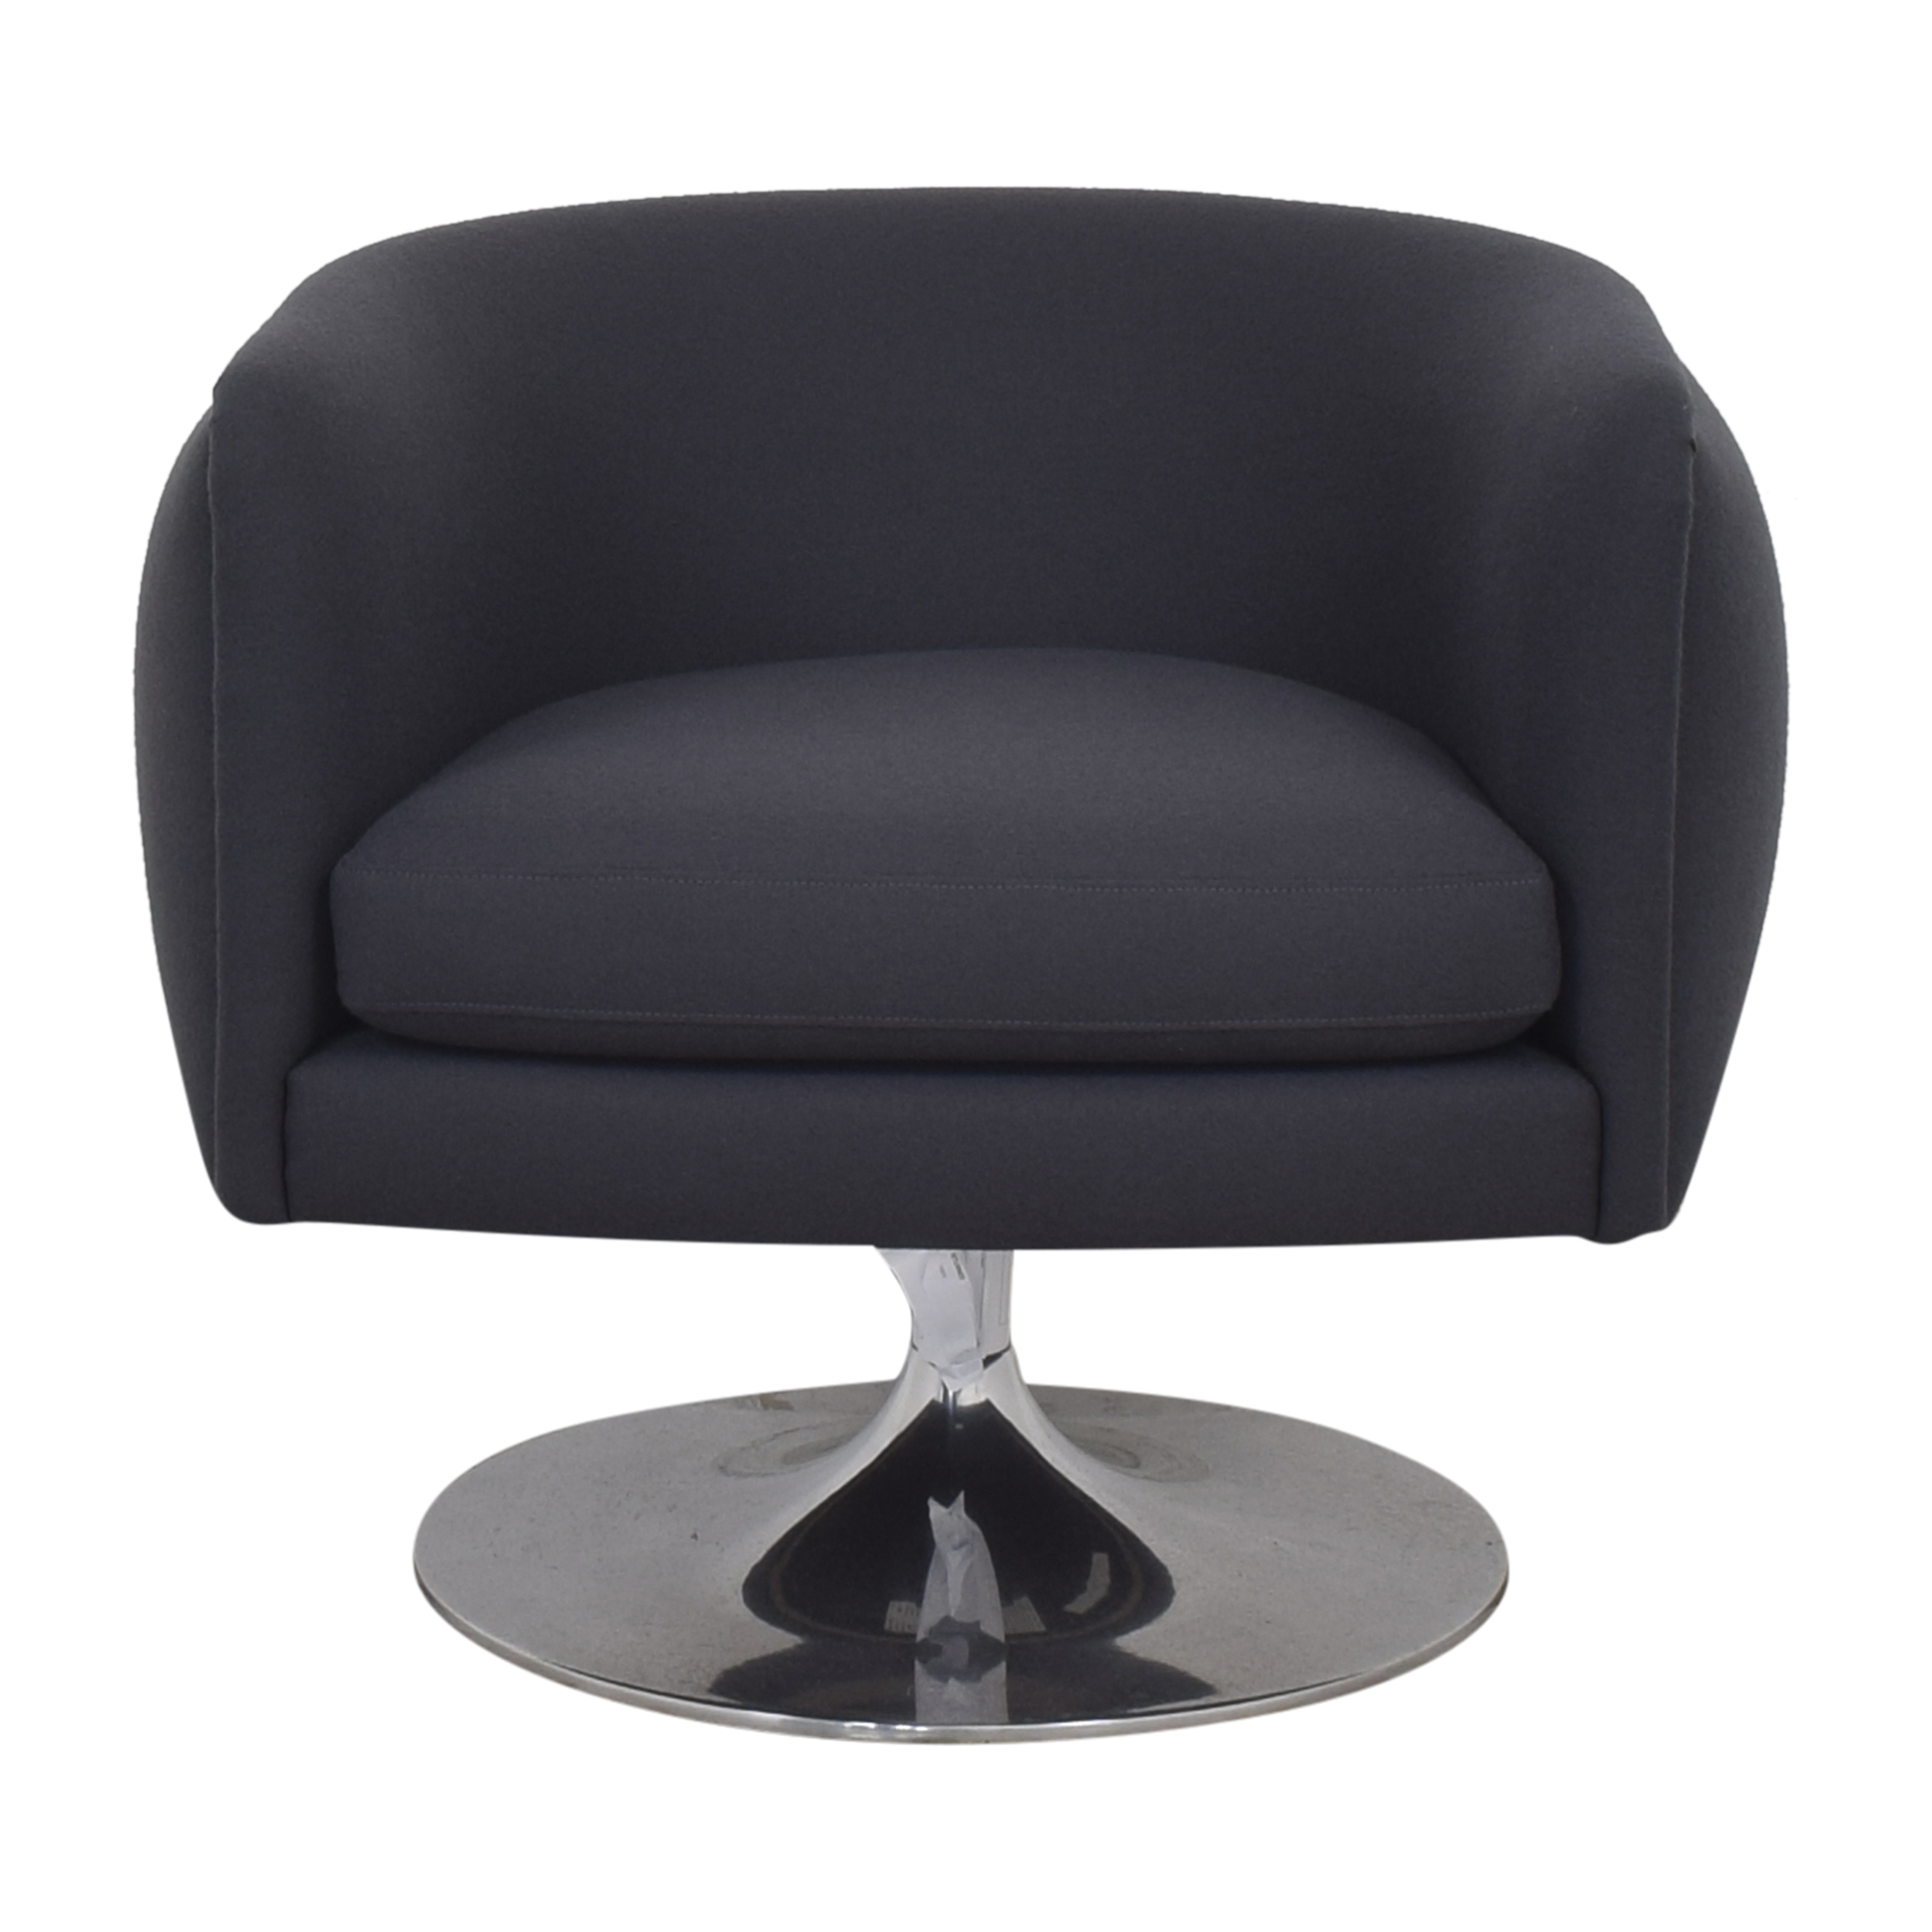 buy Knoll D'Urso Modern Swivel Chair Knoll Chairs